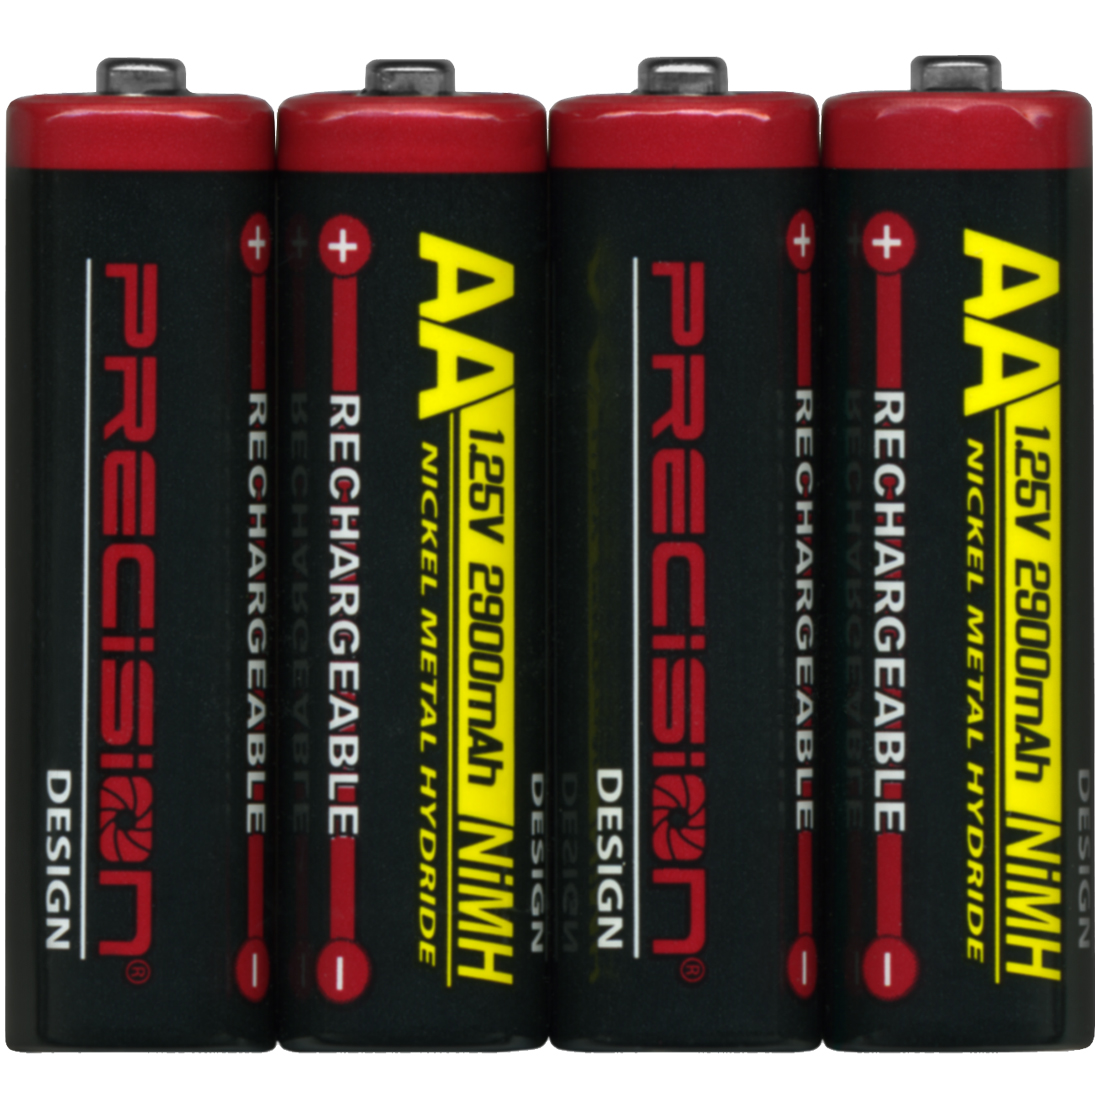 Precision Design (4 Pack) 2900mAh AA NiMH Rechargeable Batteries